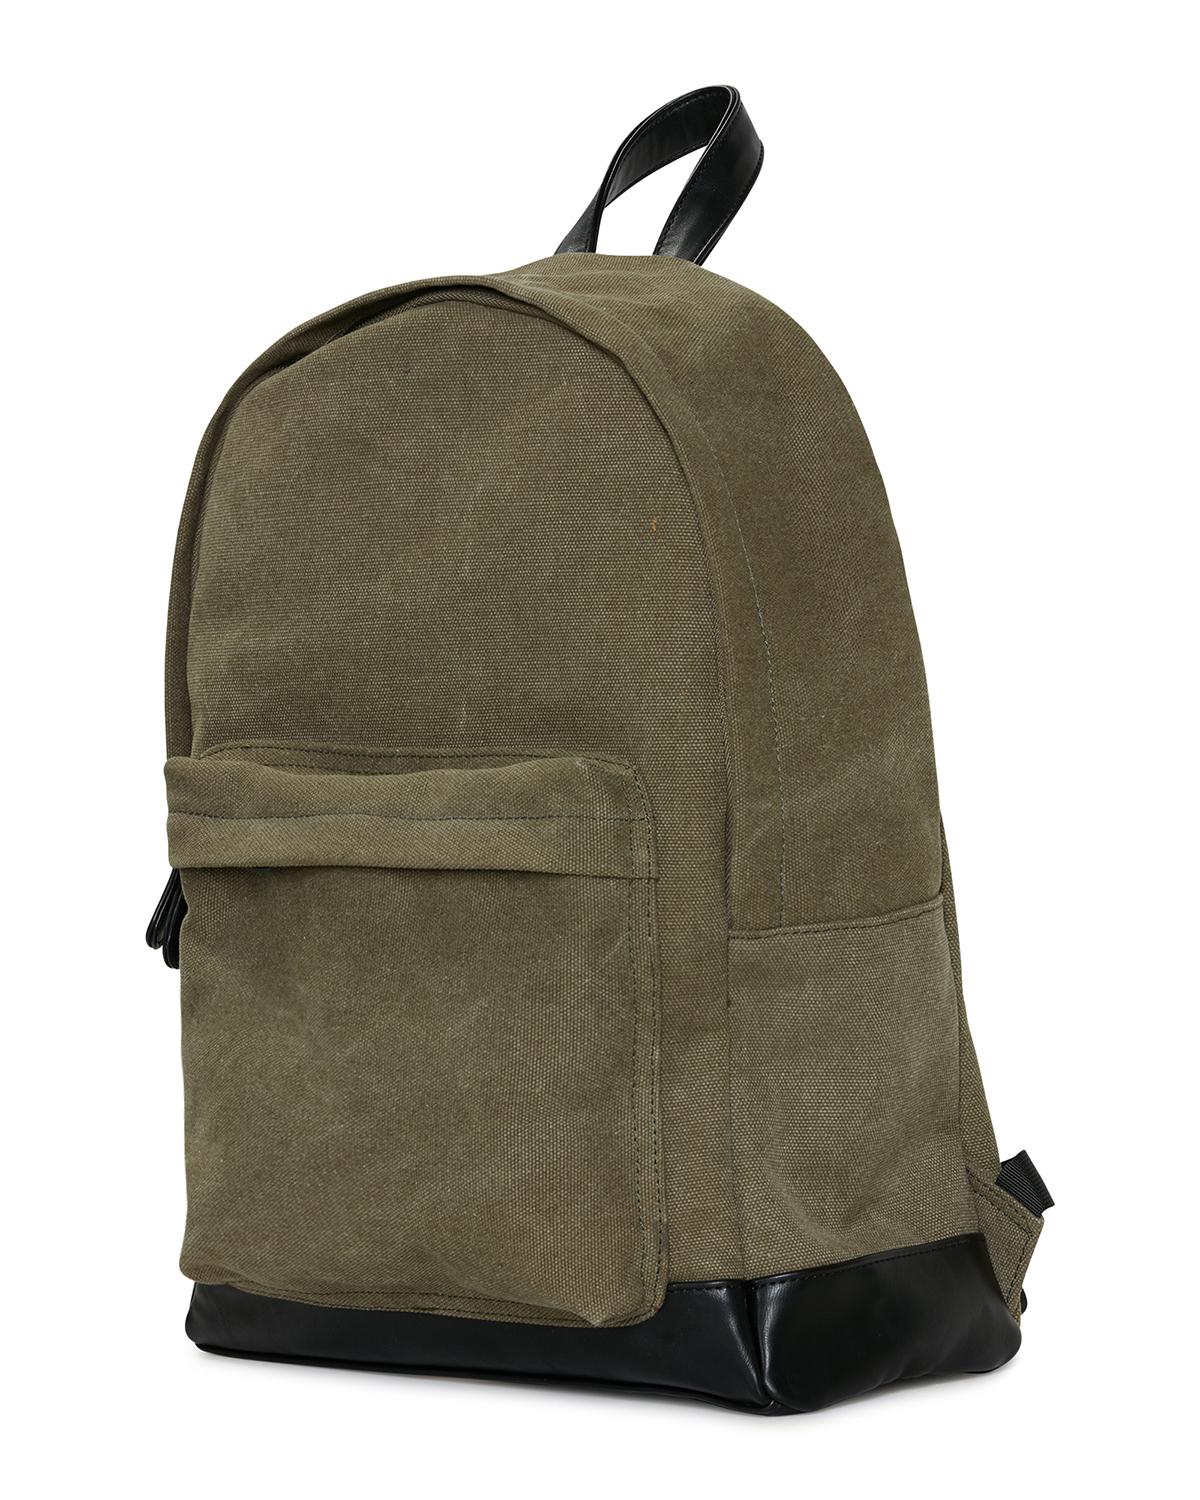 herren rucksack aus canvas 79486712 we fashion. Black Bedroom Furniture Sets. Home Design Ideas